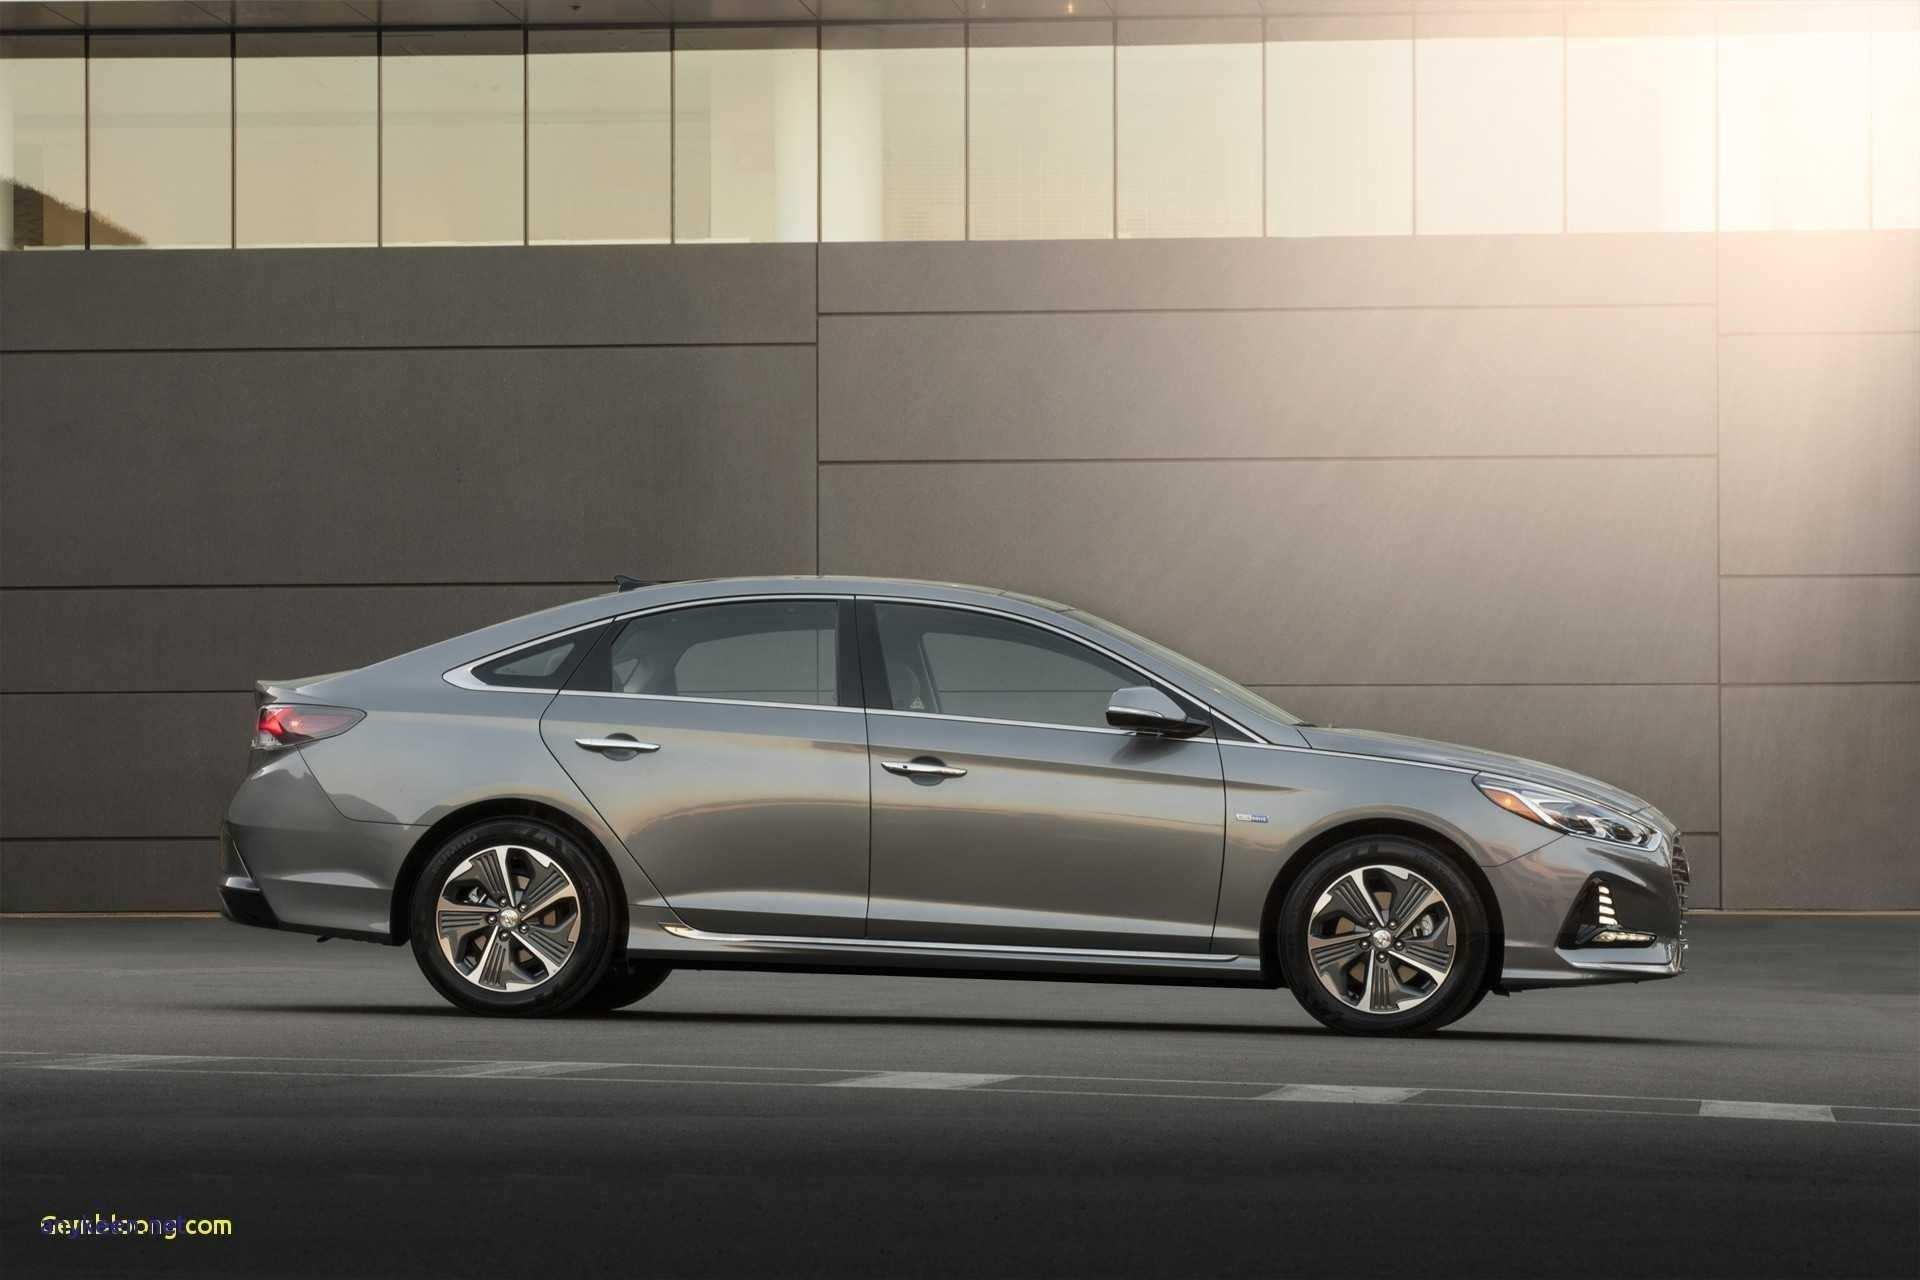 67 Best Review 2019 Hyundai Sonata Review Configurations by 2019 Hyundai Sonata Review